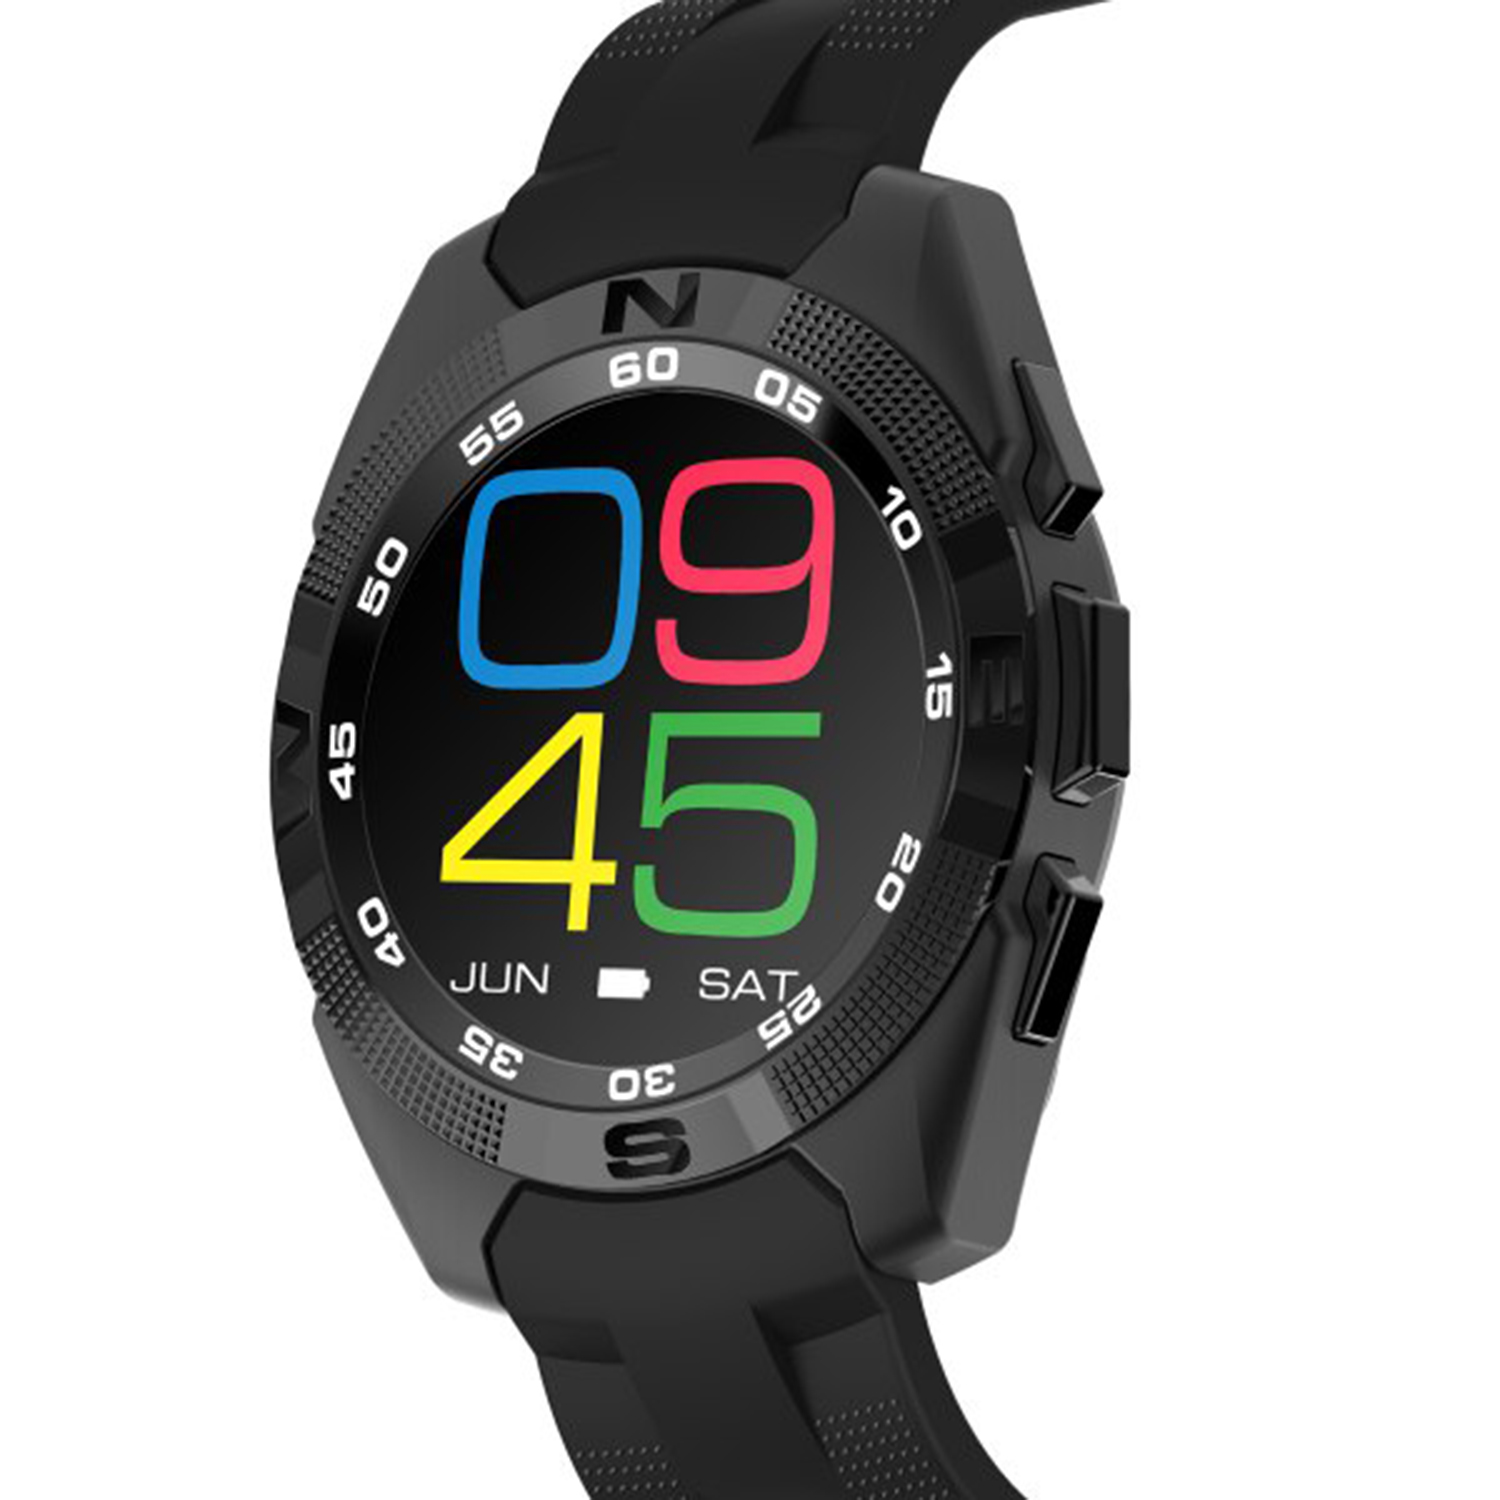 Original NO 1 G5 Sport Running Smart Watches Men Women Bluetooth font b Smartwatch b font